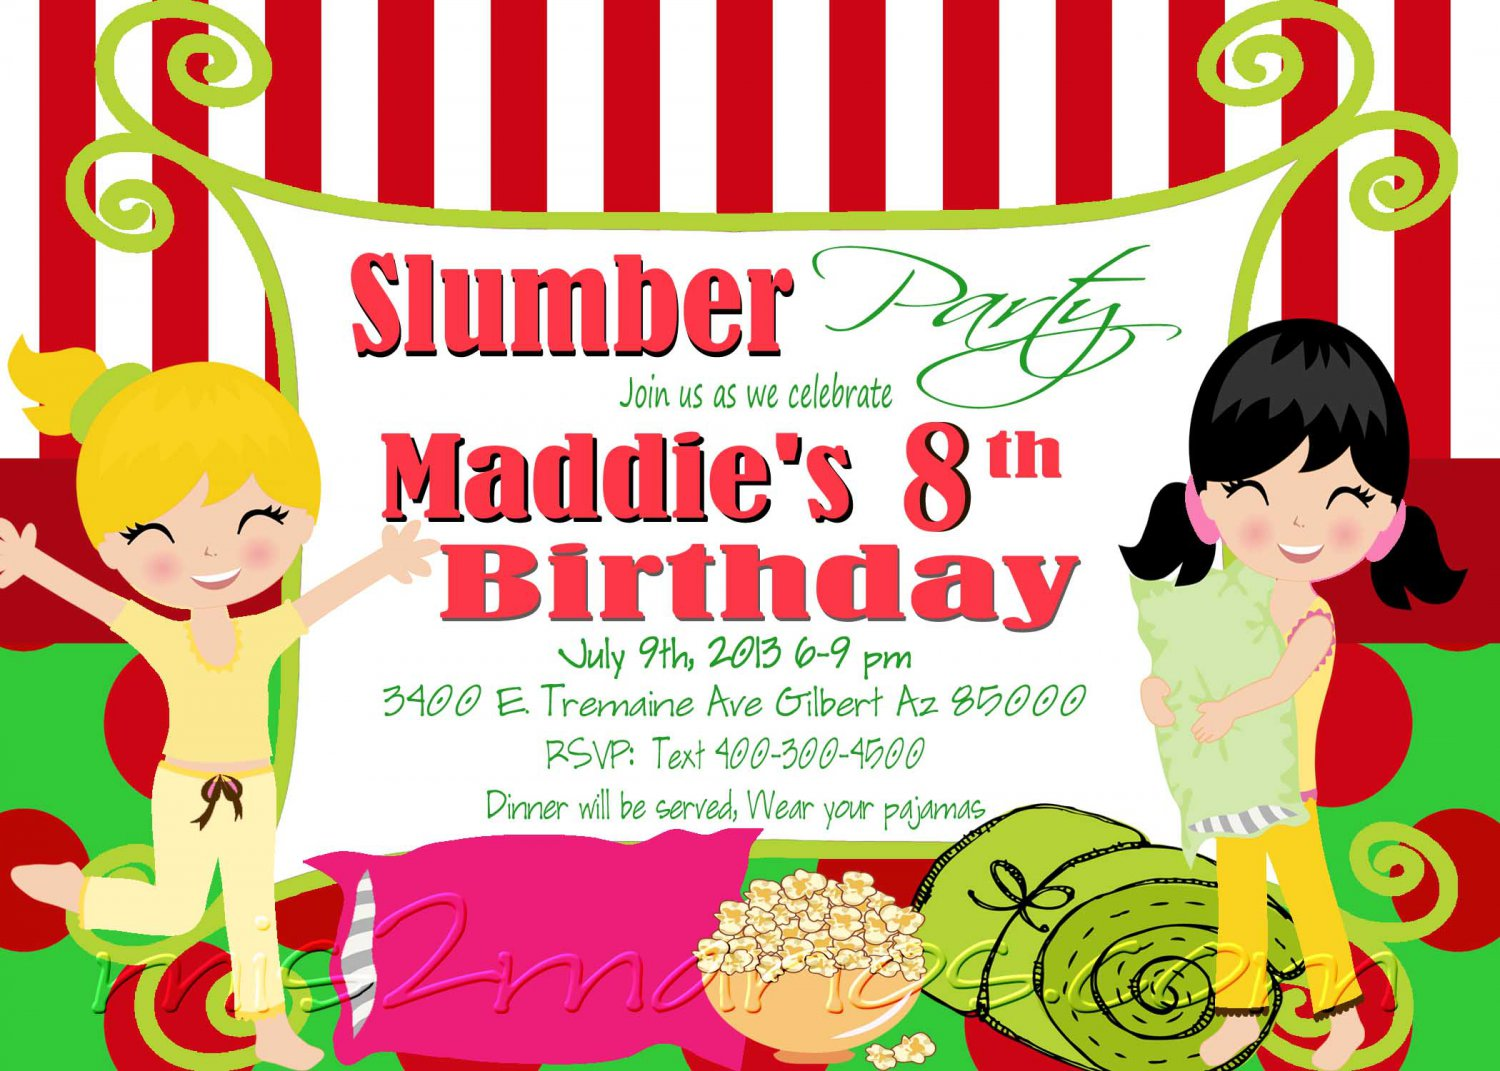 Slumber party invitation sleepover invite birthday party girls slumber party invitation sleepover invite birthday party girls printable diy christmas invitation stopboris